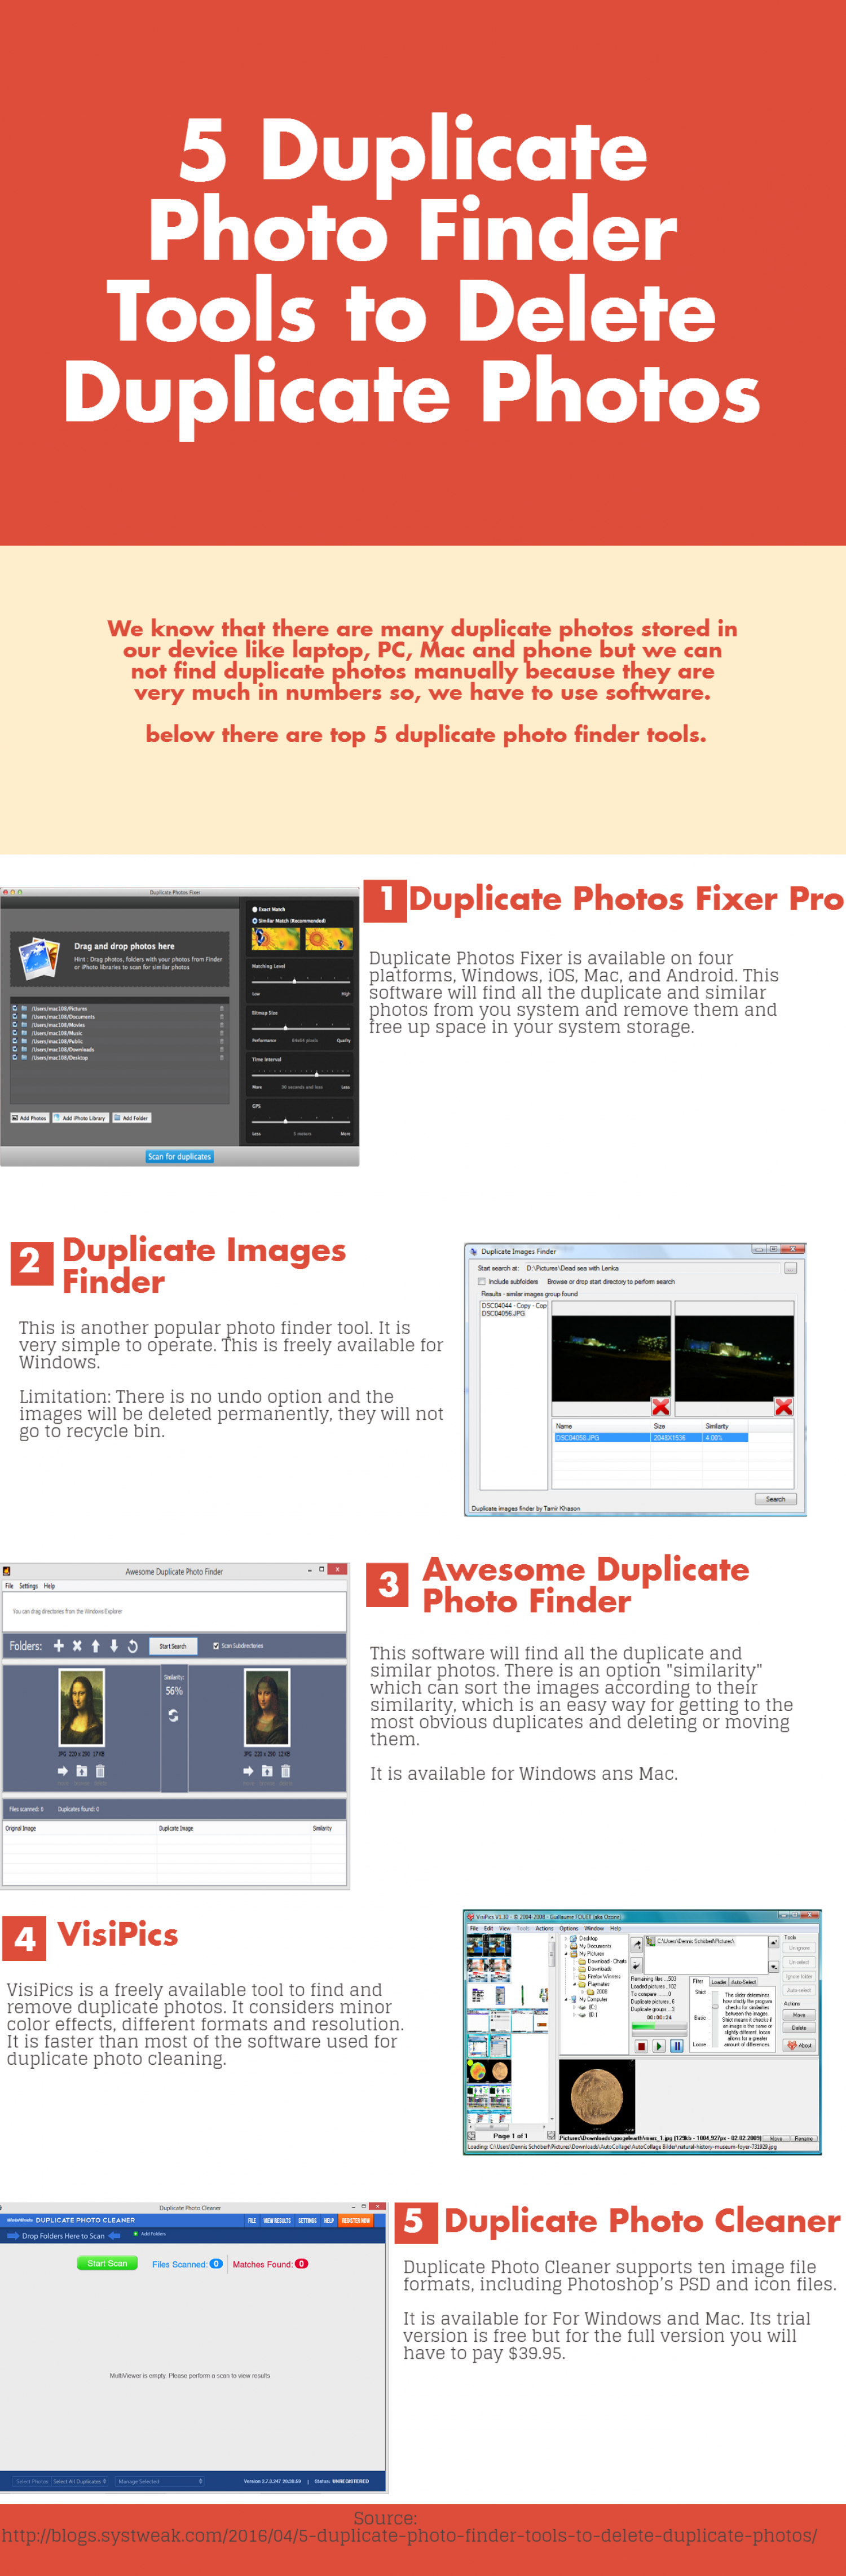 5 Duplicate Photo Finder Tools to Delete Duplicate Photos Infographic